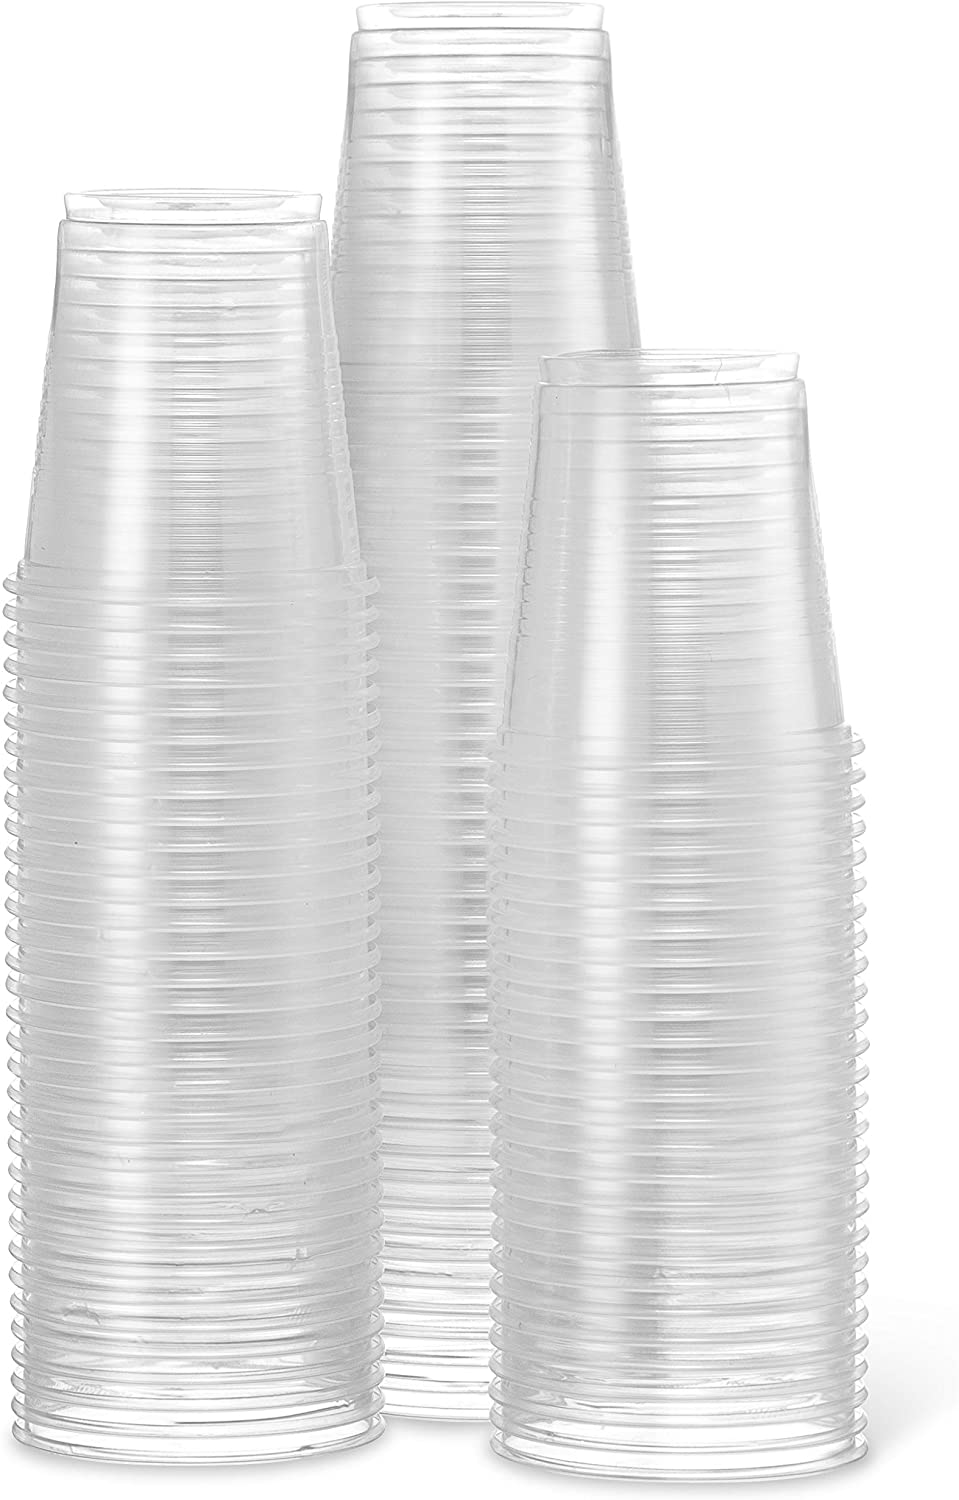 [300 Cups] Settings 3 Oz Clear Plastic Disposable Reusable Cups For Drinking, Bathroom, Rinsing, Tests, Medication, Party, Home, Office, Water, Juice, 3 Packs